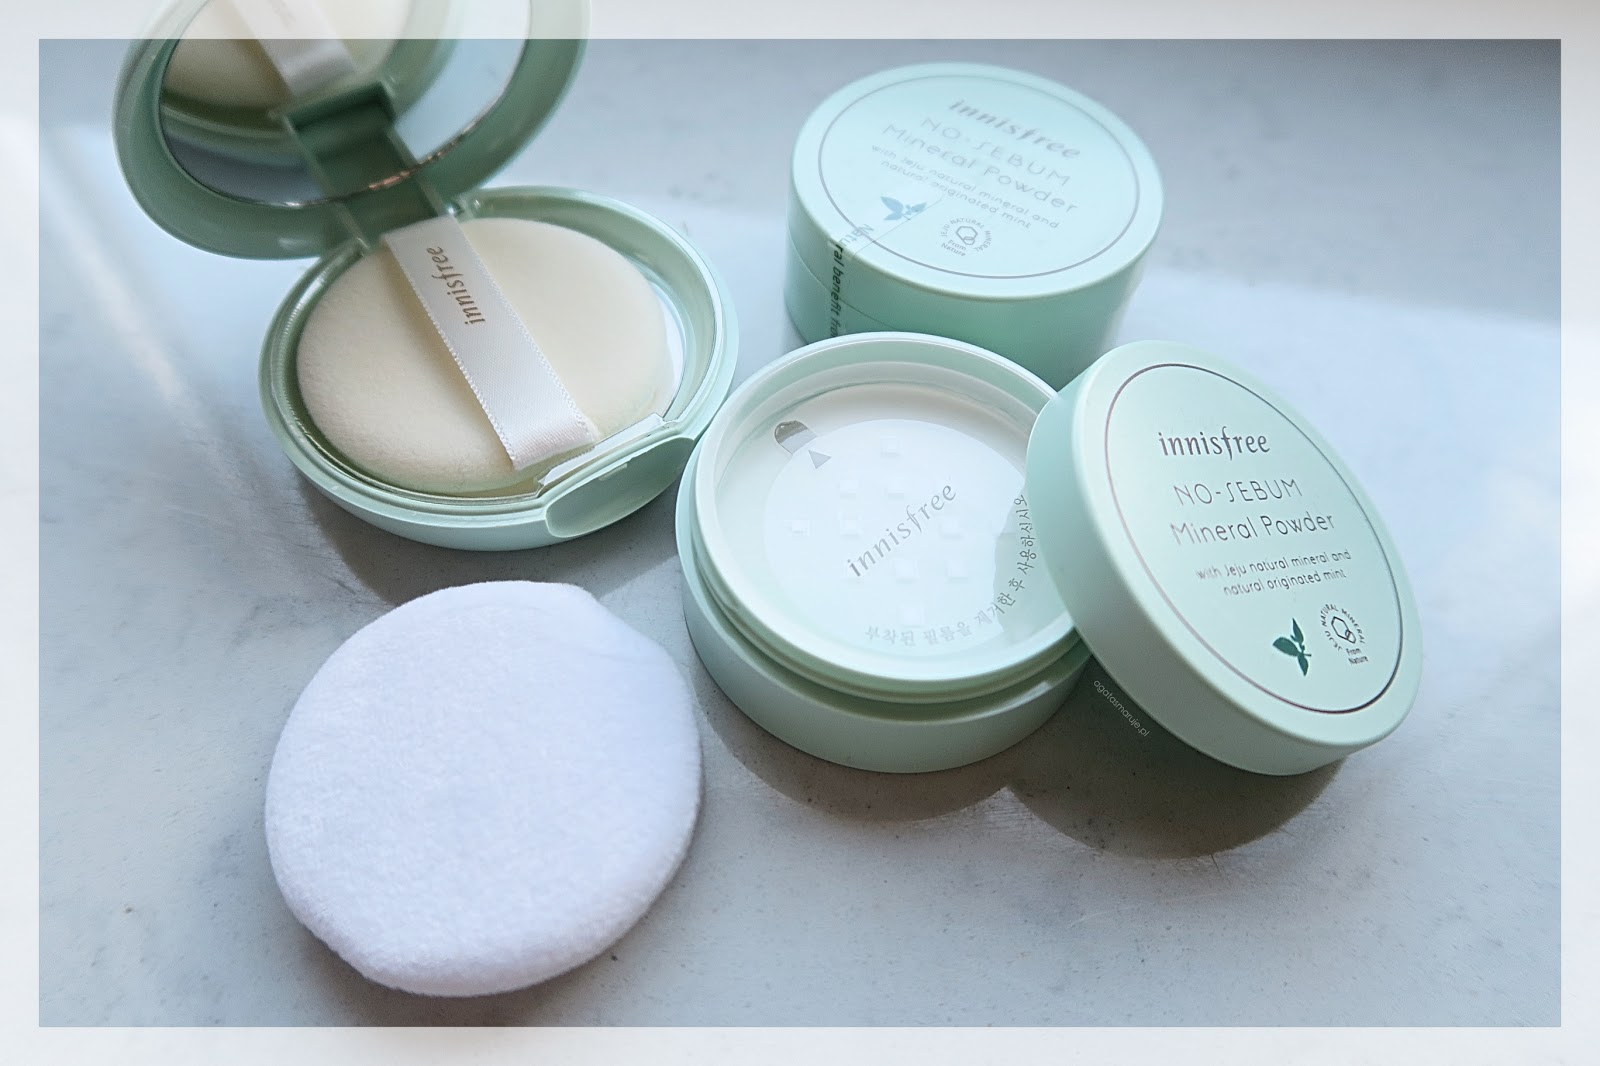 Innisfree No-Sebum Mineral Powder INCI